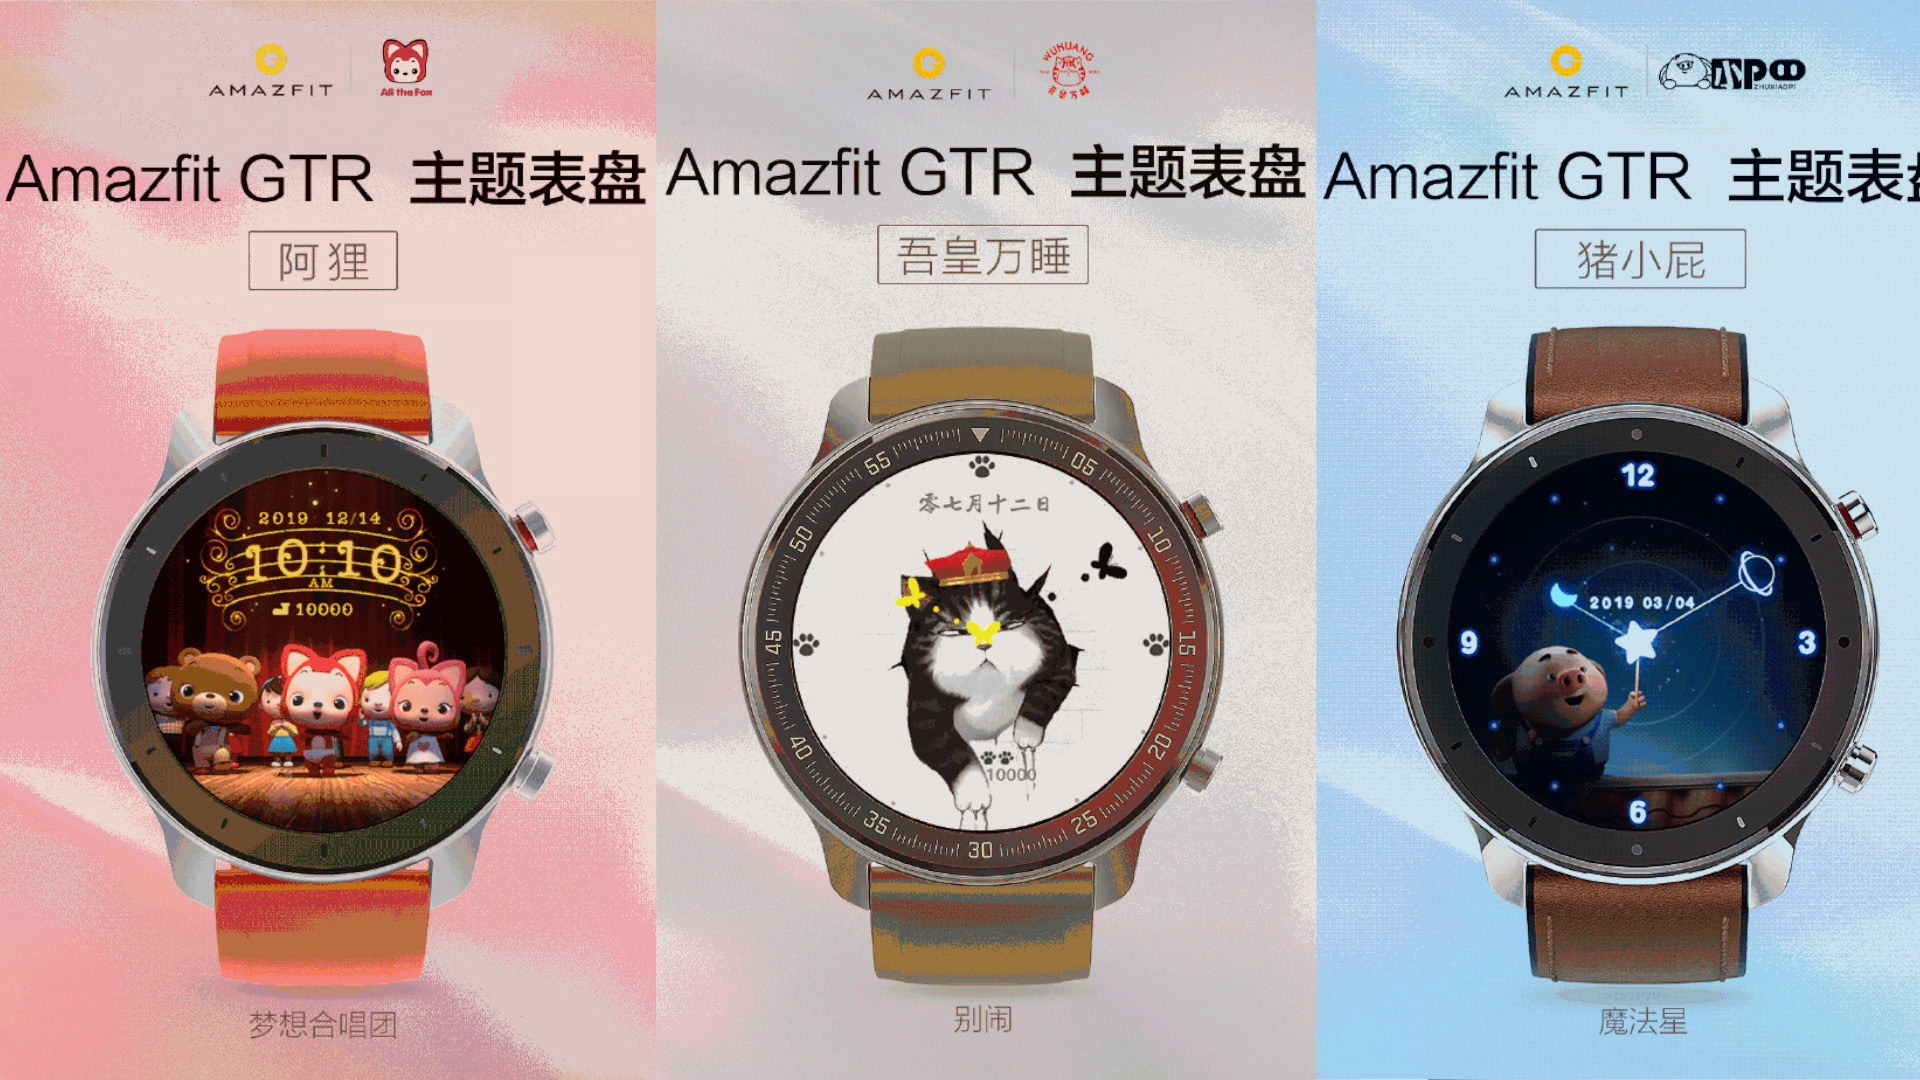 Amazfit GTR: new watch faces with the latest update